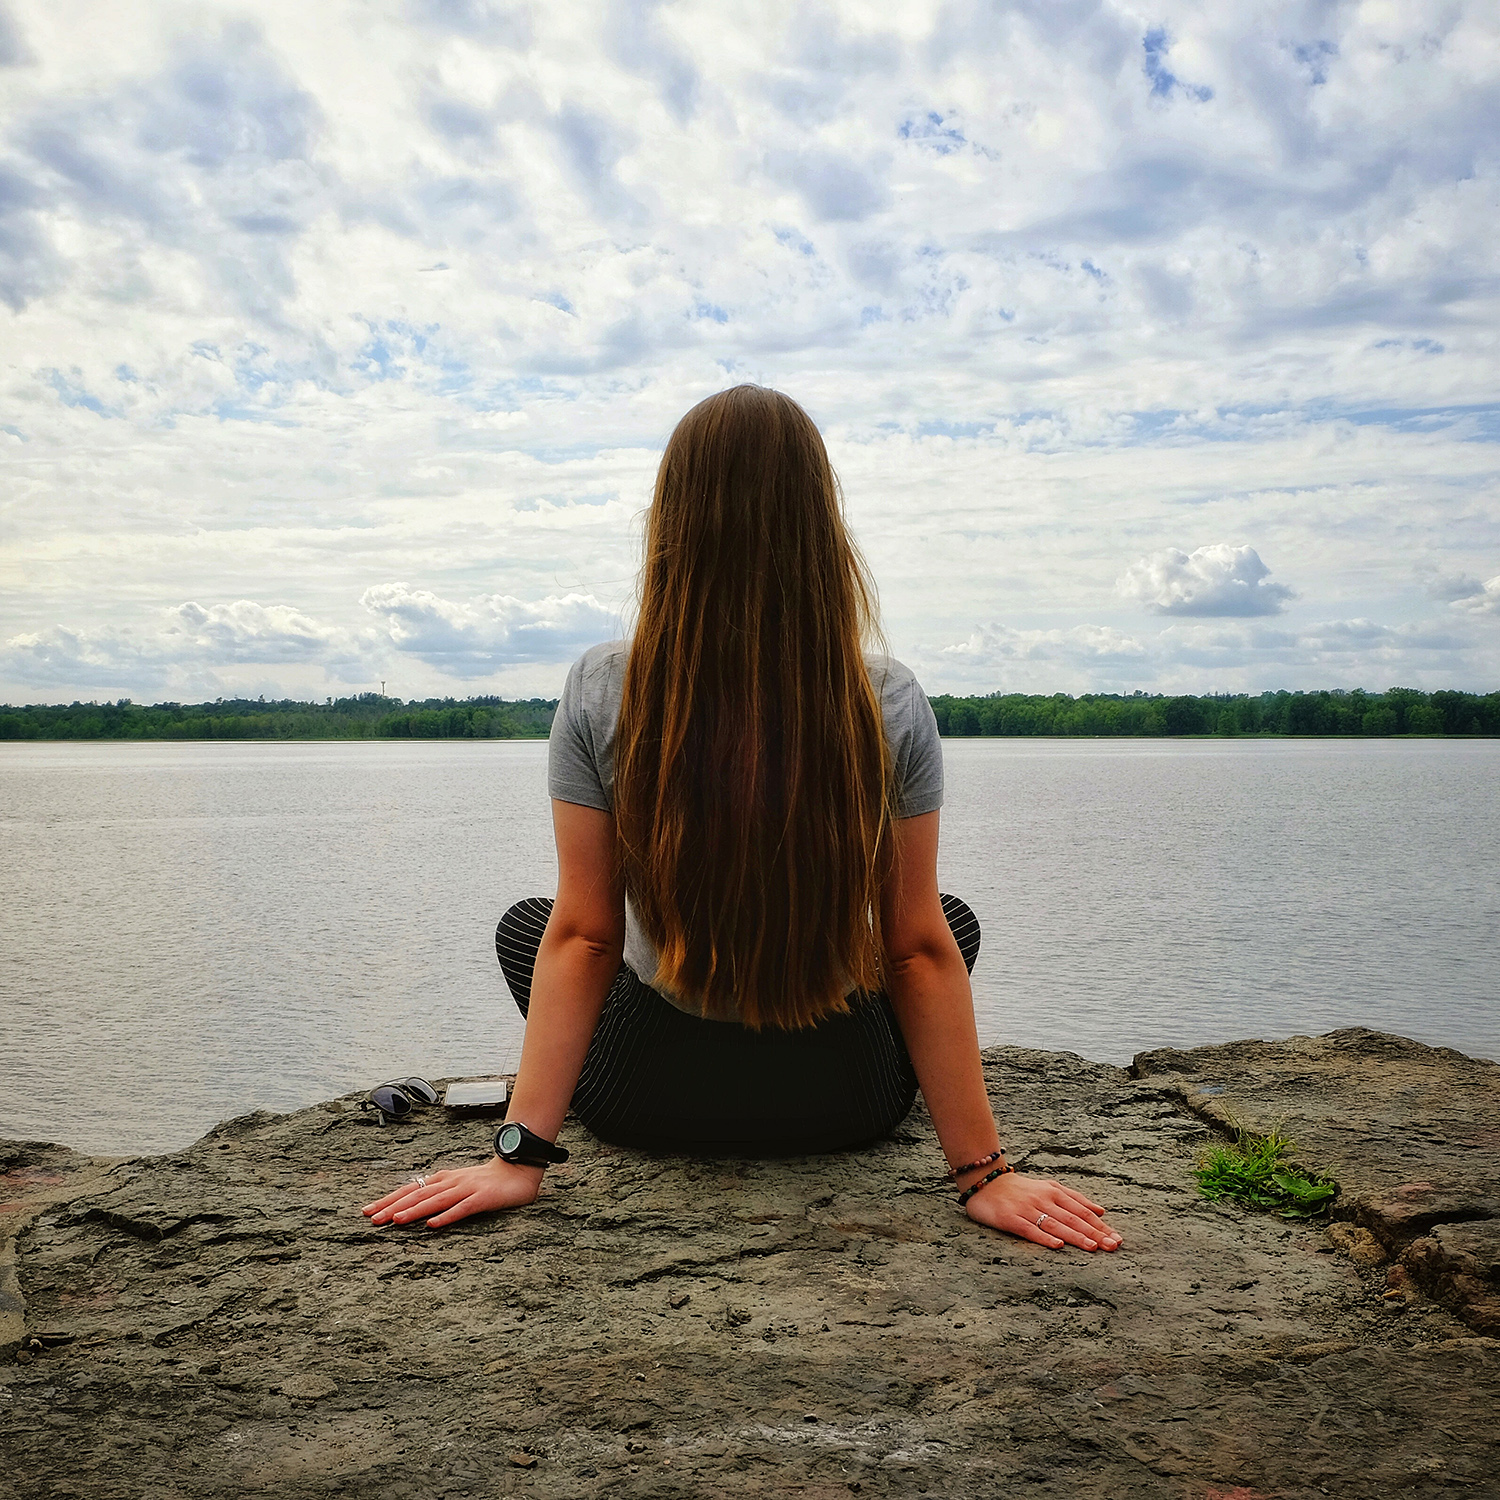 The key to mindfulness - quiet calmness!